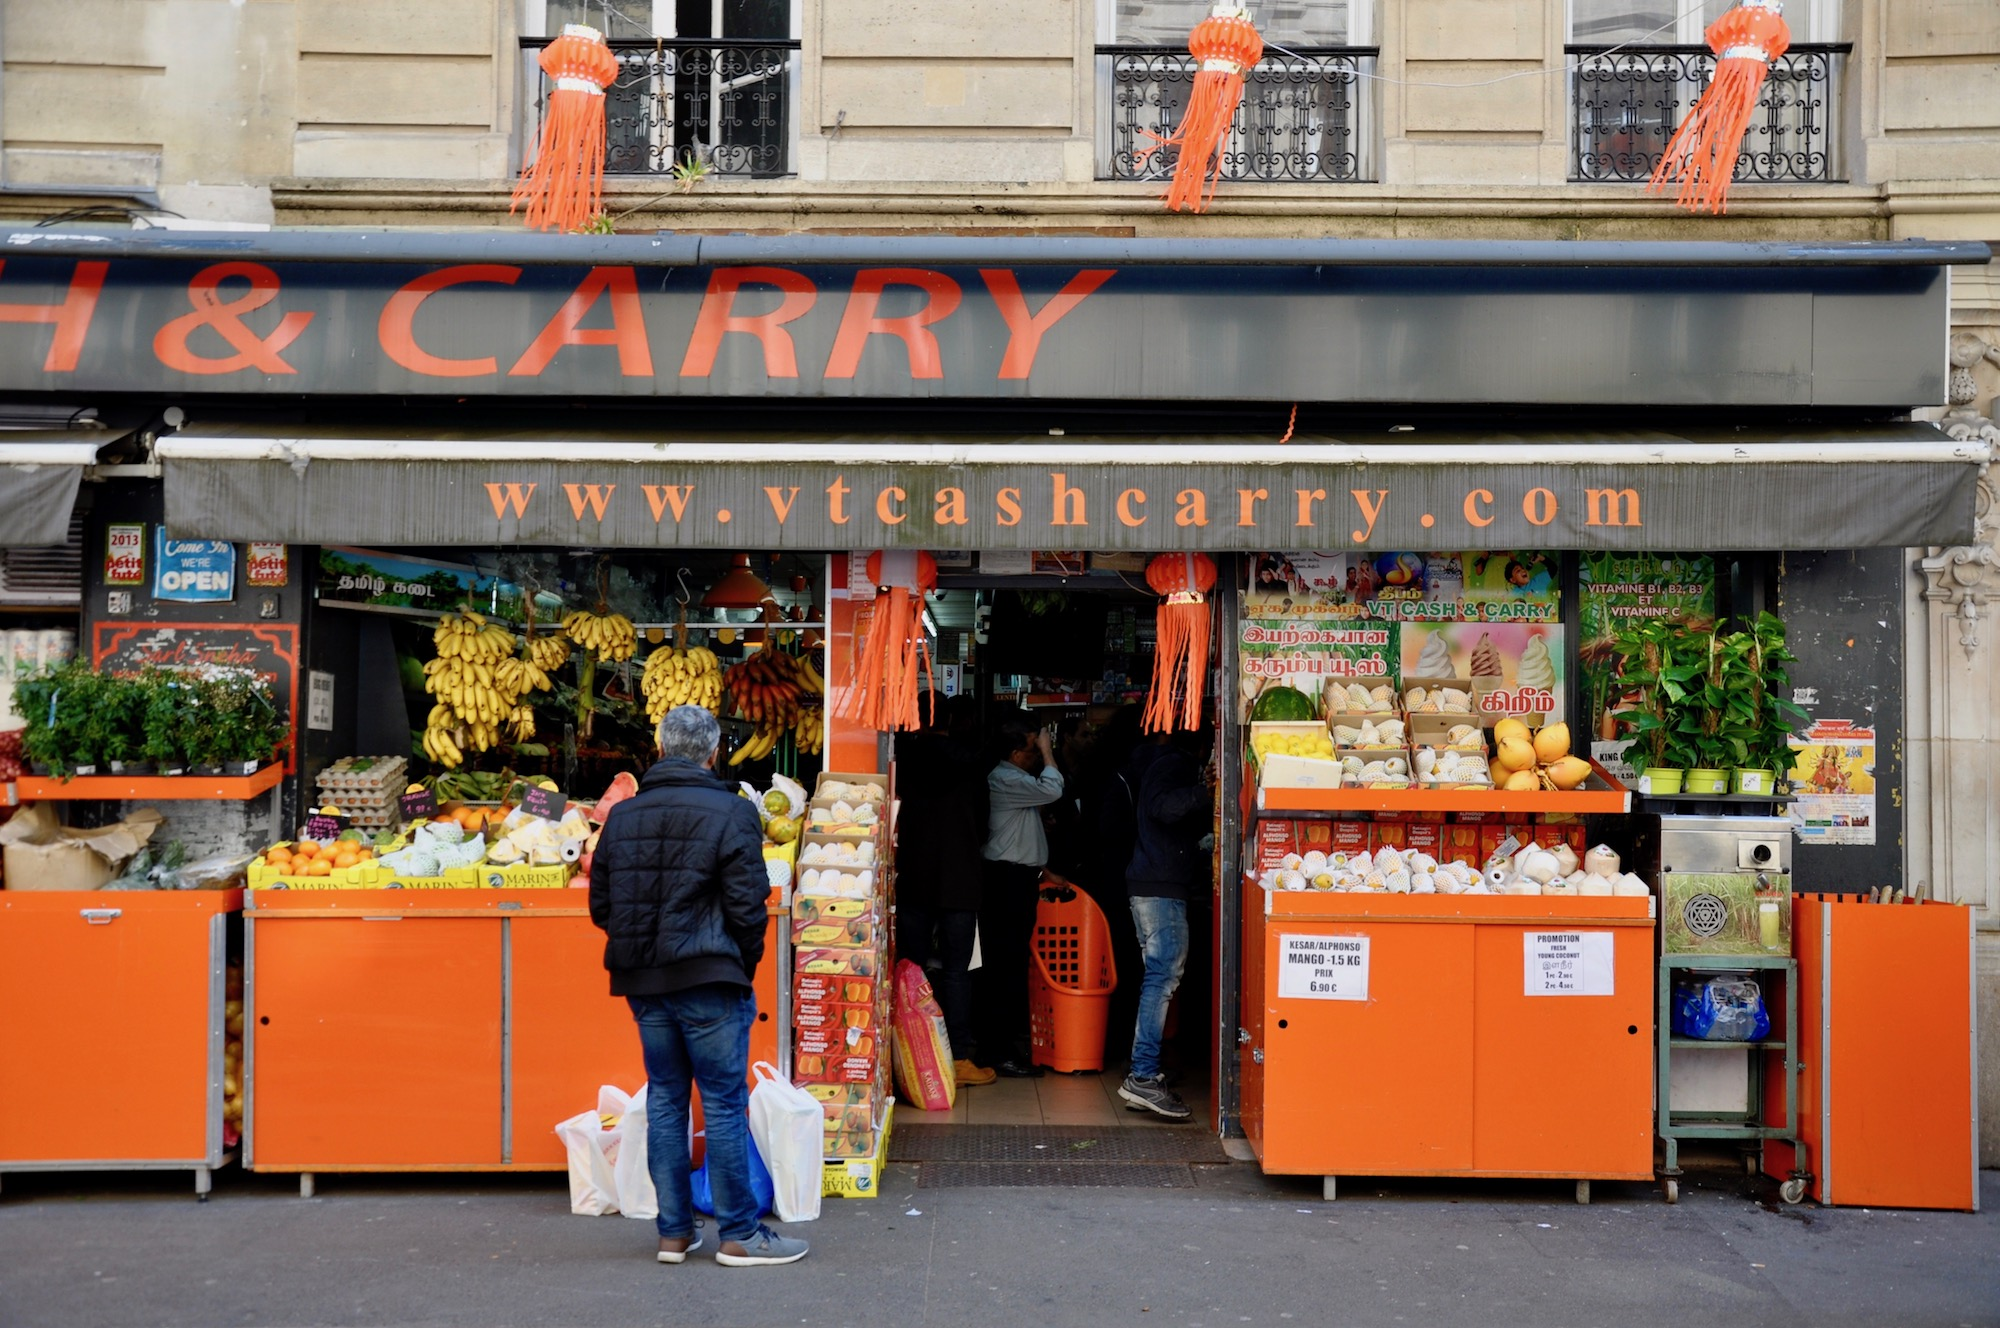 La Chapelle neighborhood in Paris has lots of Indian restaurants and Indian grocery stores selling exotic wares.